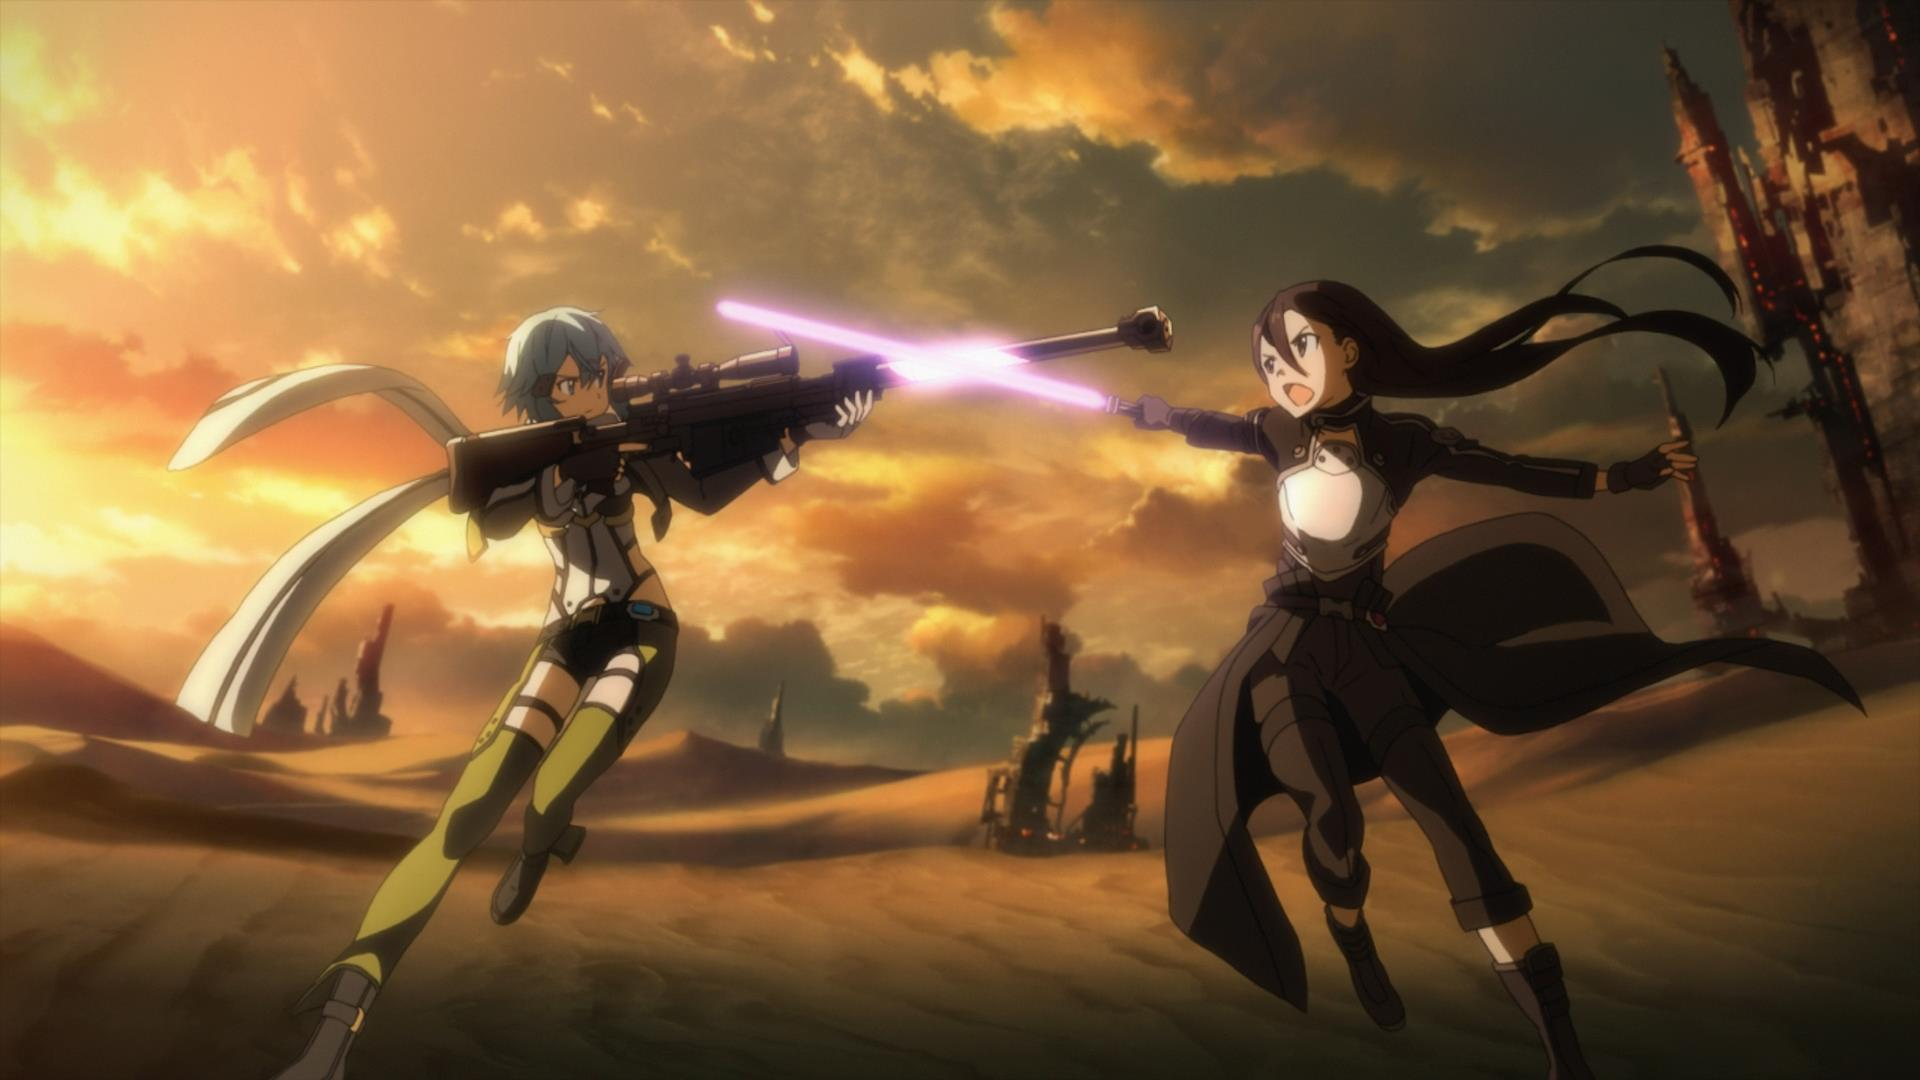 Sword Art Online II     Too Many Words  neko raws Sword Art Online II   NCOP BD  1080p